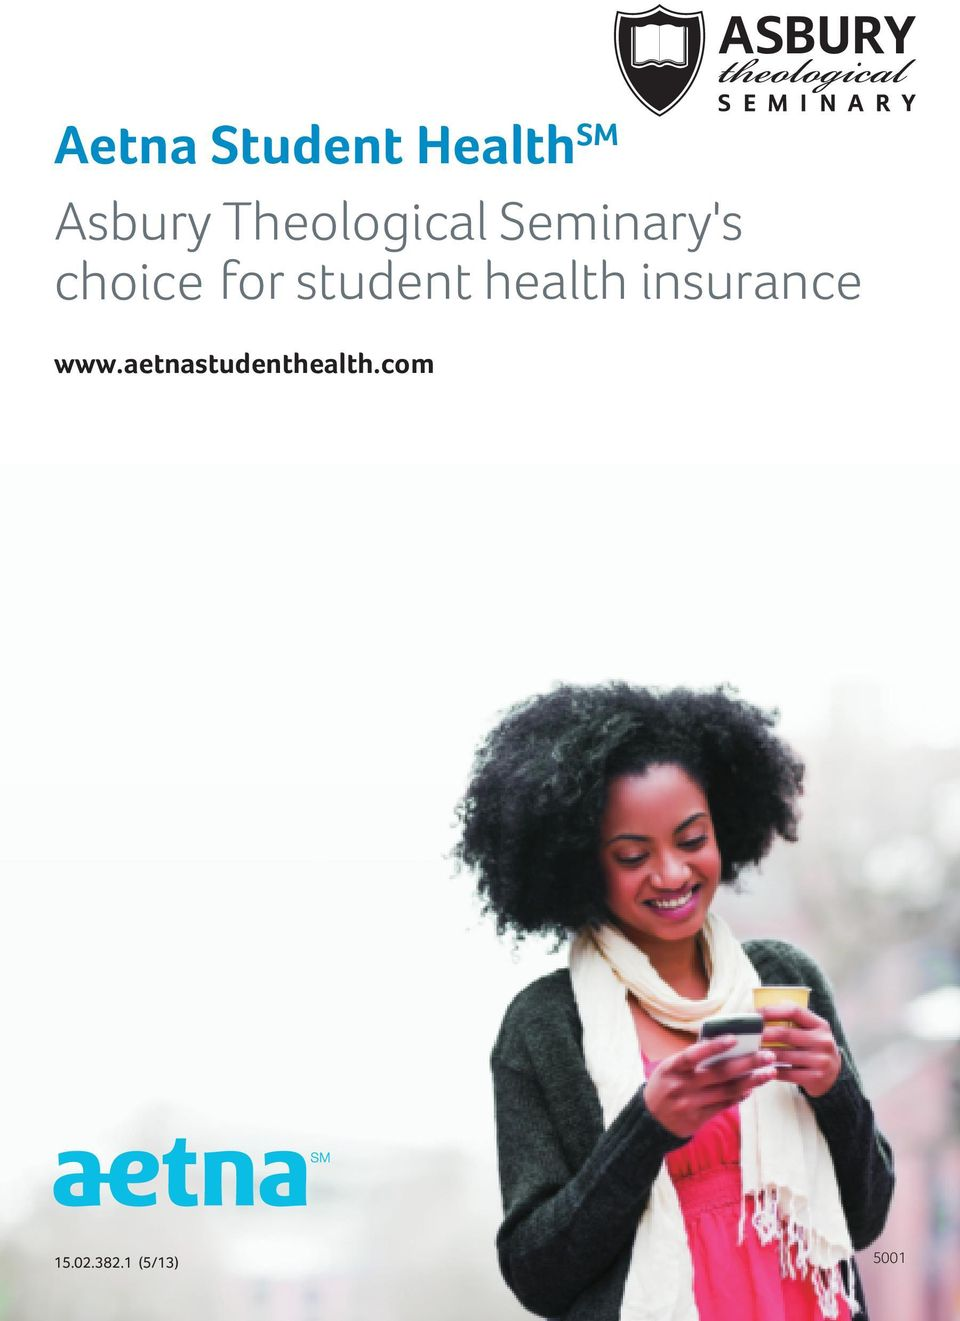 student health insurance www.